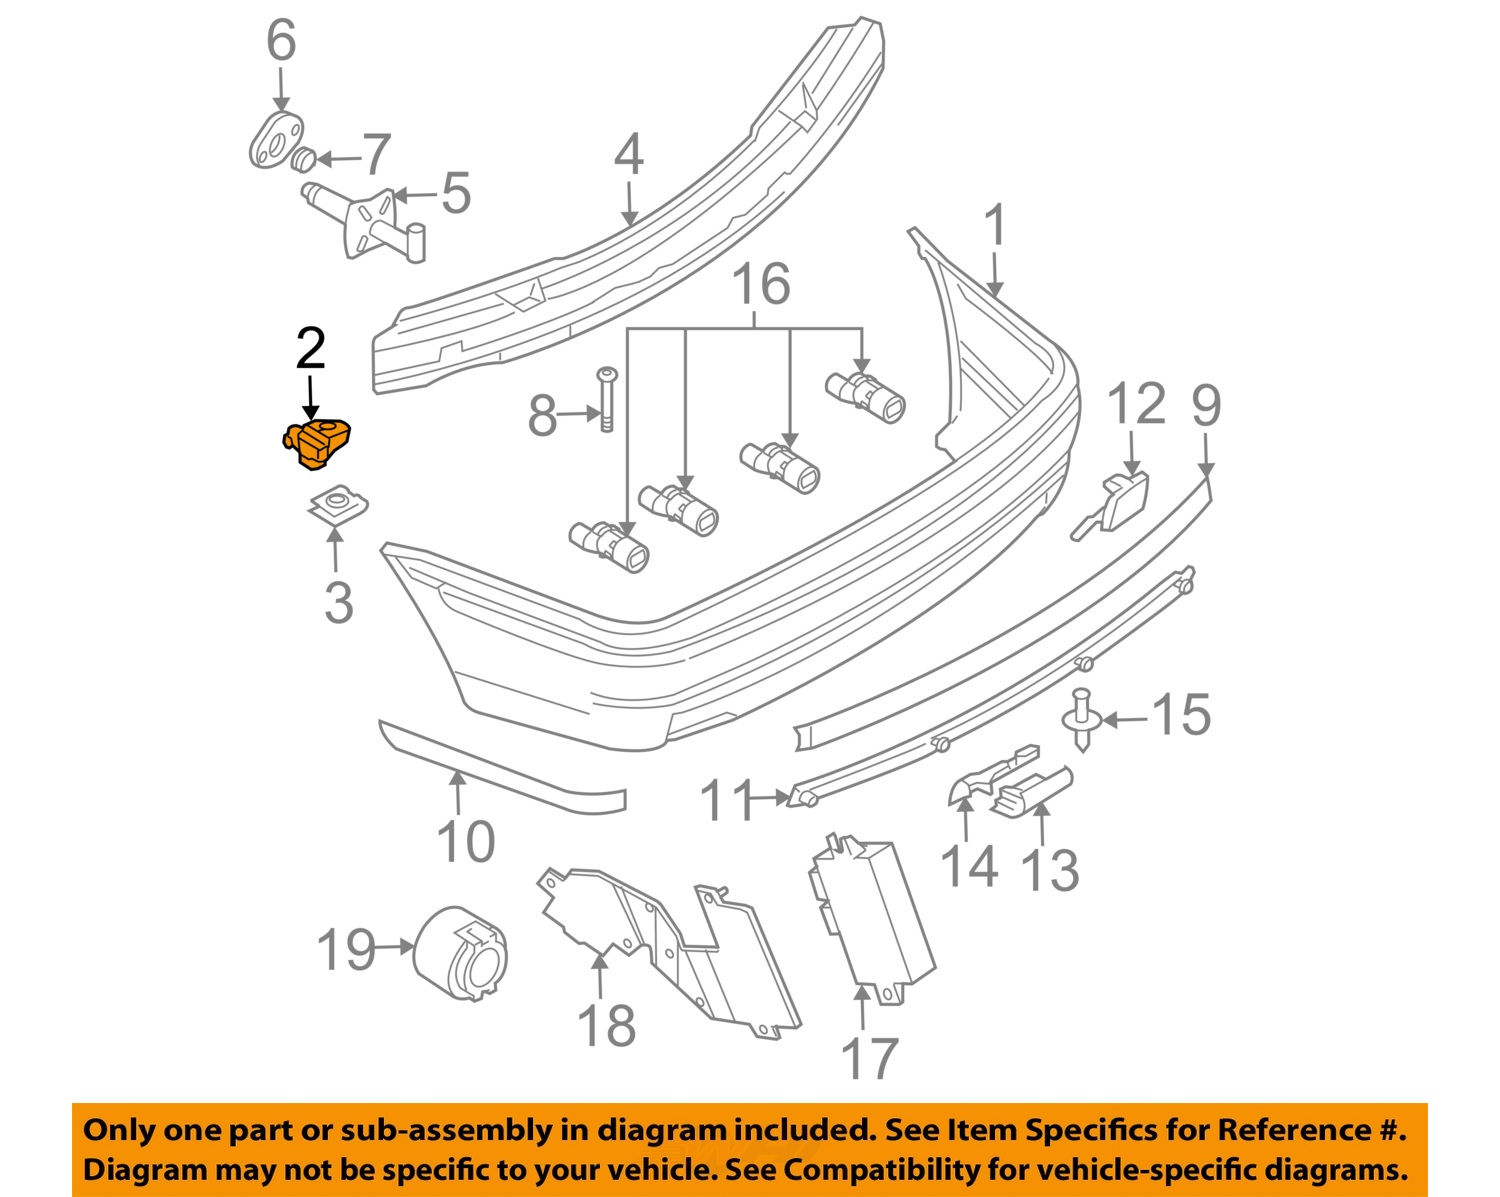 2004 bmw 325i parts diagram how to read wiring diagrams motorcycle 2001 bumper auto catalog and